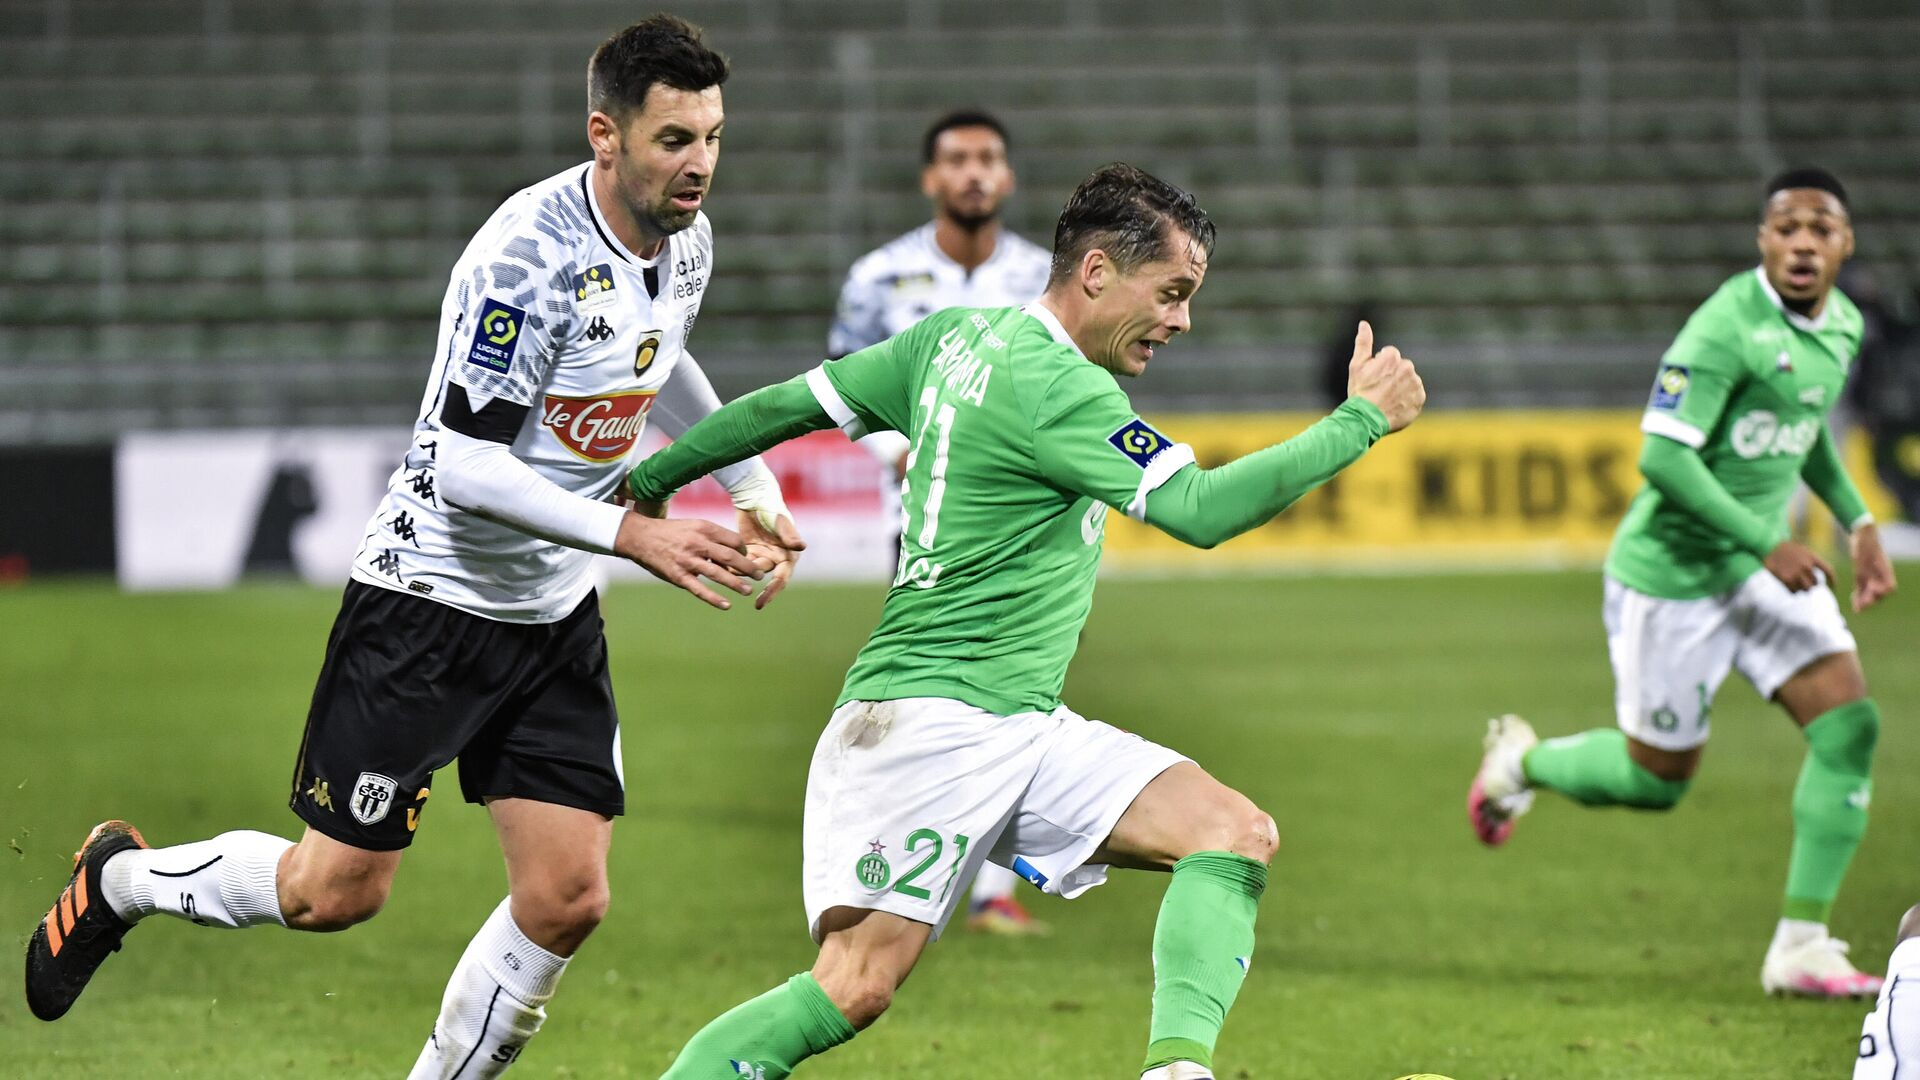 Saint-Etienne's French forward Romain Hamouma (R) fights for the ball with Angers' French midfielder Thomas Mangani (L) during the French L1 football match between AS Saint-Etienne and SCO Angers at the Geoffroy Guichard stadium in Saint-Etienne, central France, on December 11, 2020. (Photo by PHILIPPE DESMAZES / AFP) - РИА Новости, 1920, 12.12.2020